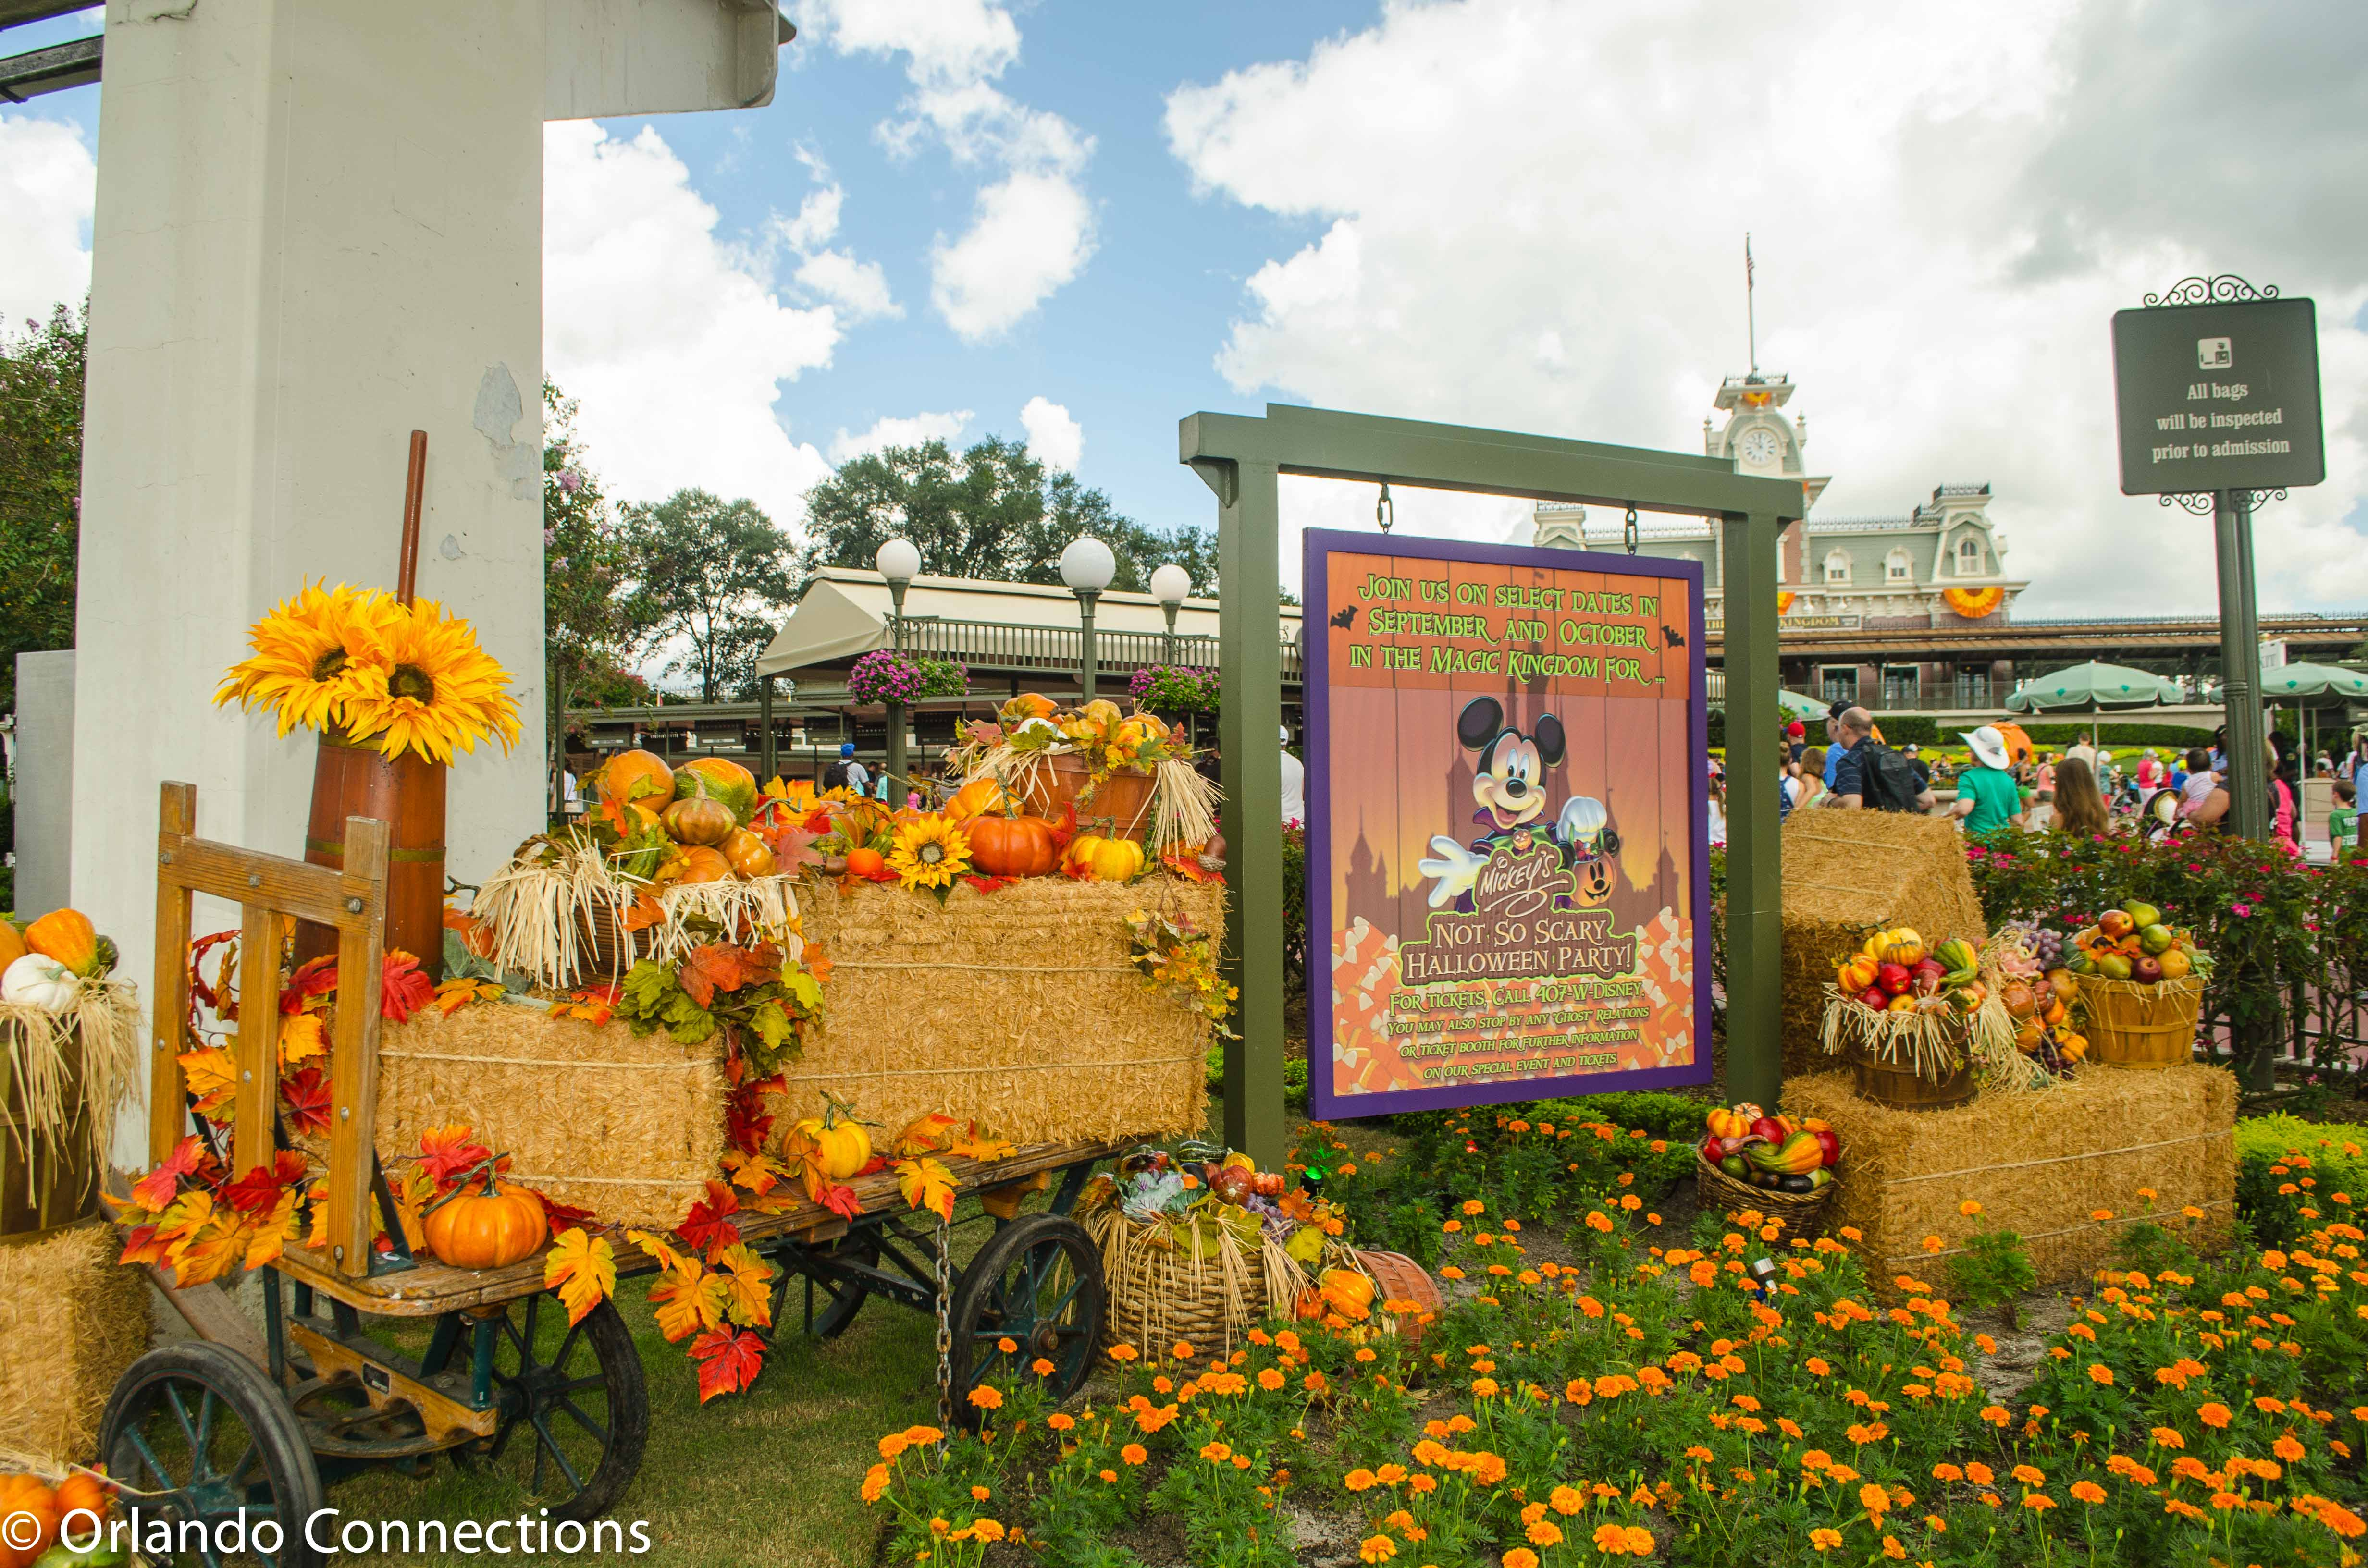 mickeys not so scary halloween party begins on september 15 so of course the magic kingdom at walt disney world is already decorated with amazing fall - Disney Halloween Orlando